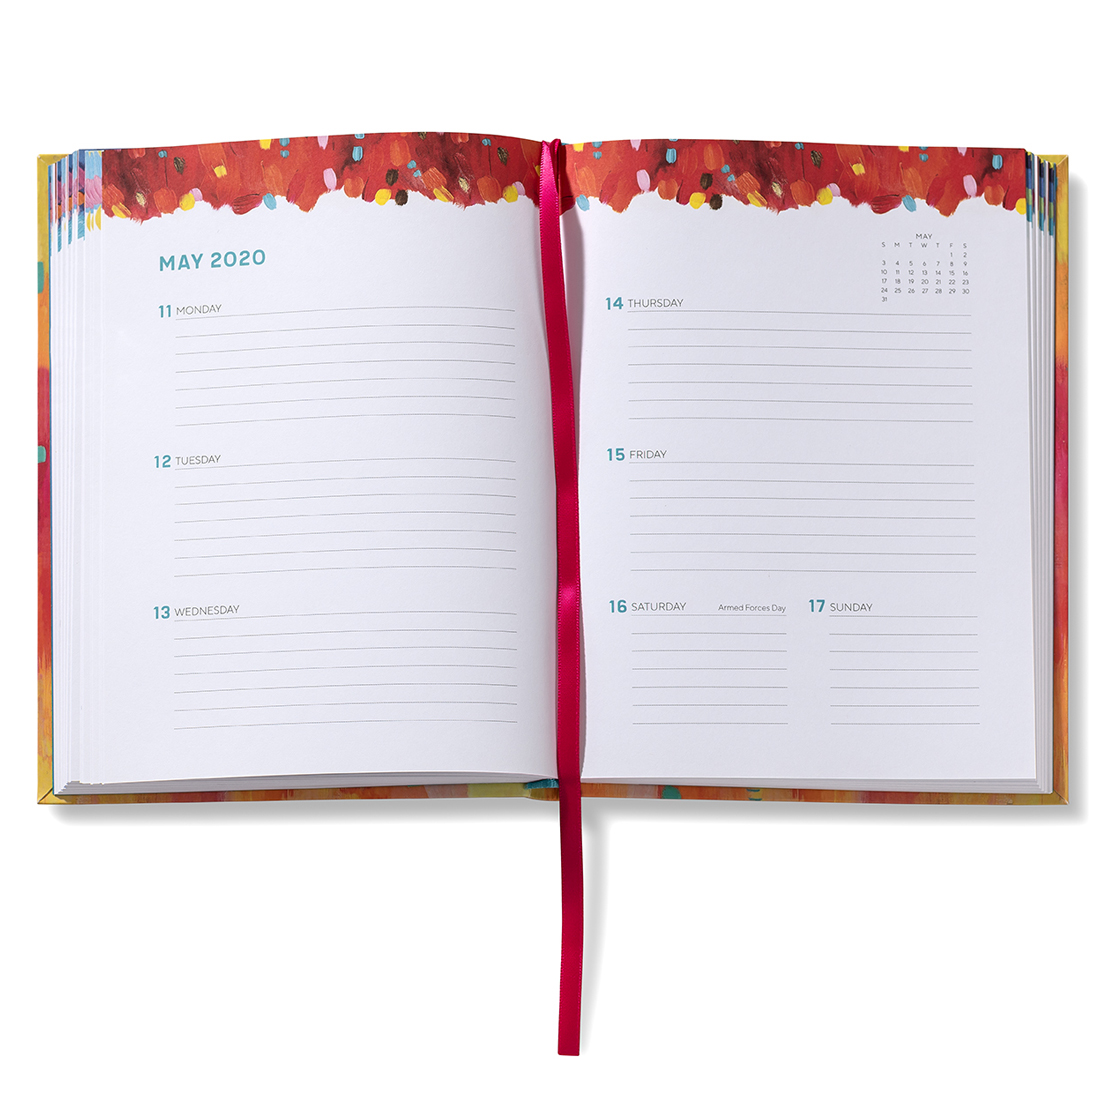 High_Note_Sarah_Coey_WeeklyPlanner6.jpg